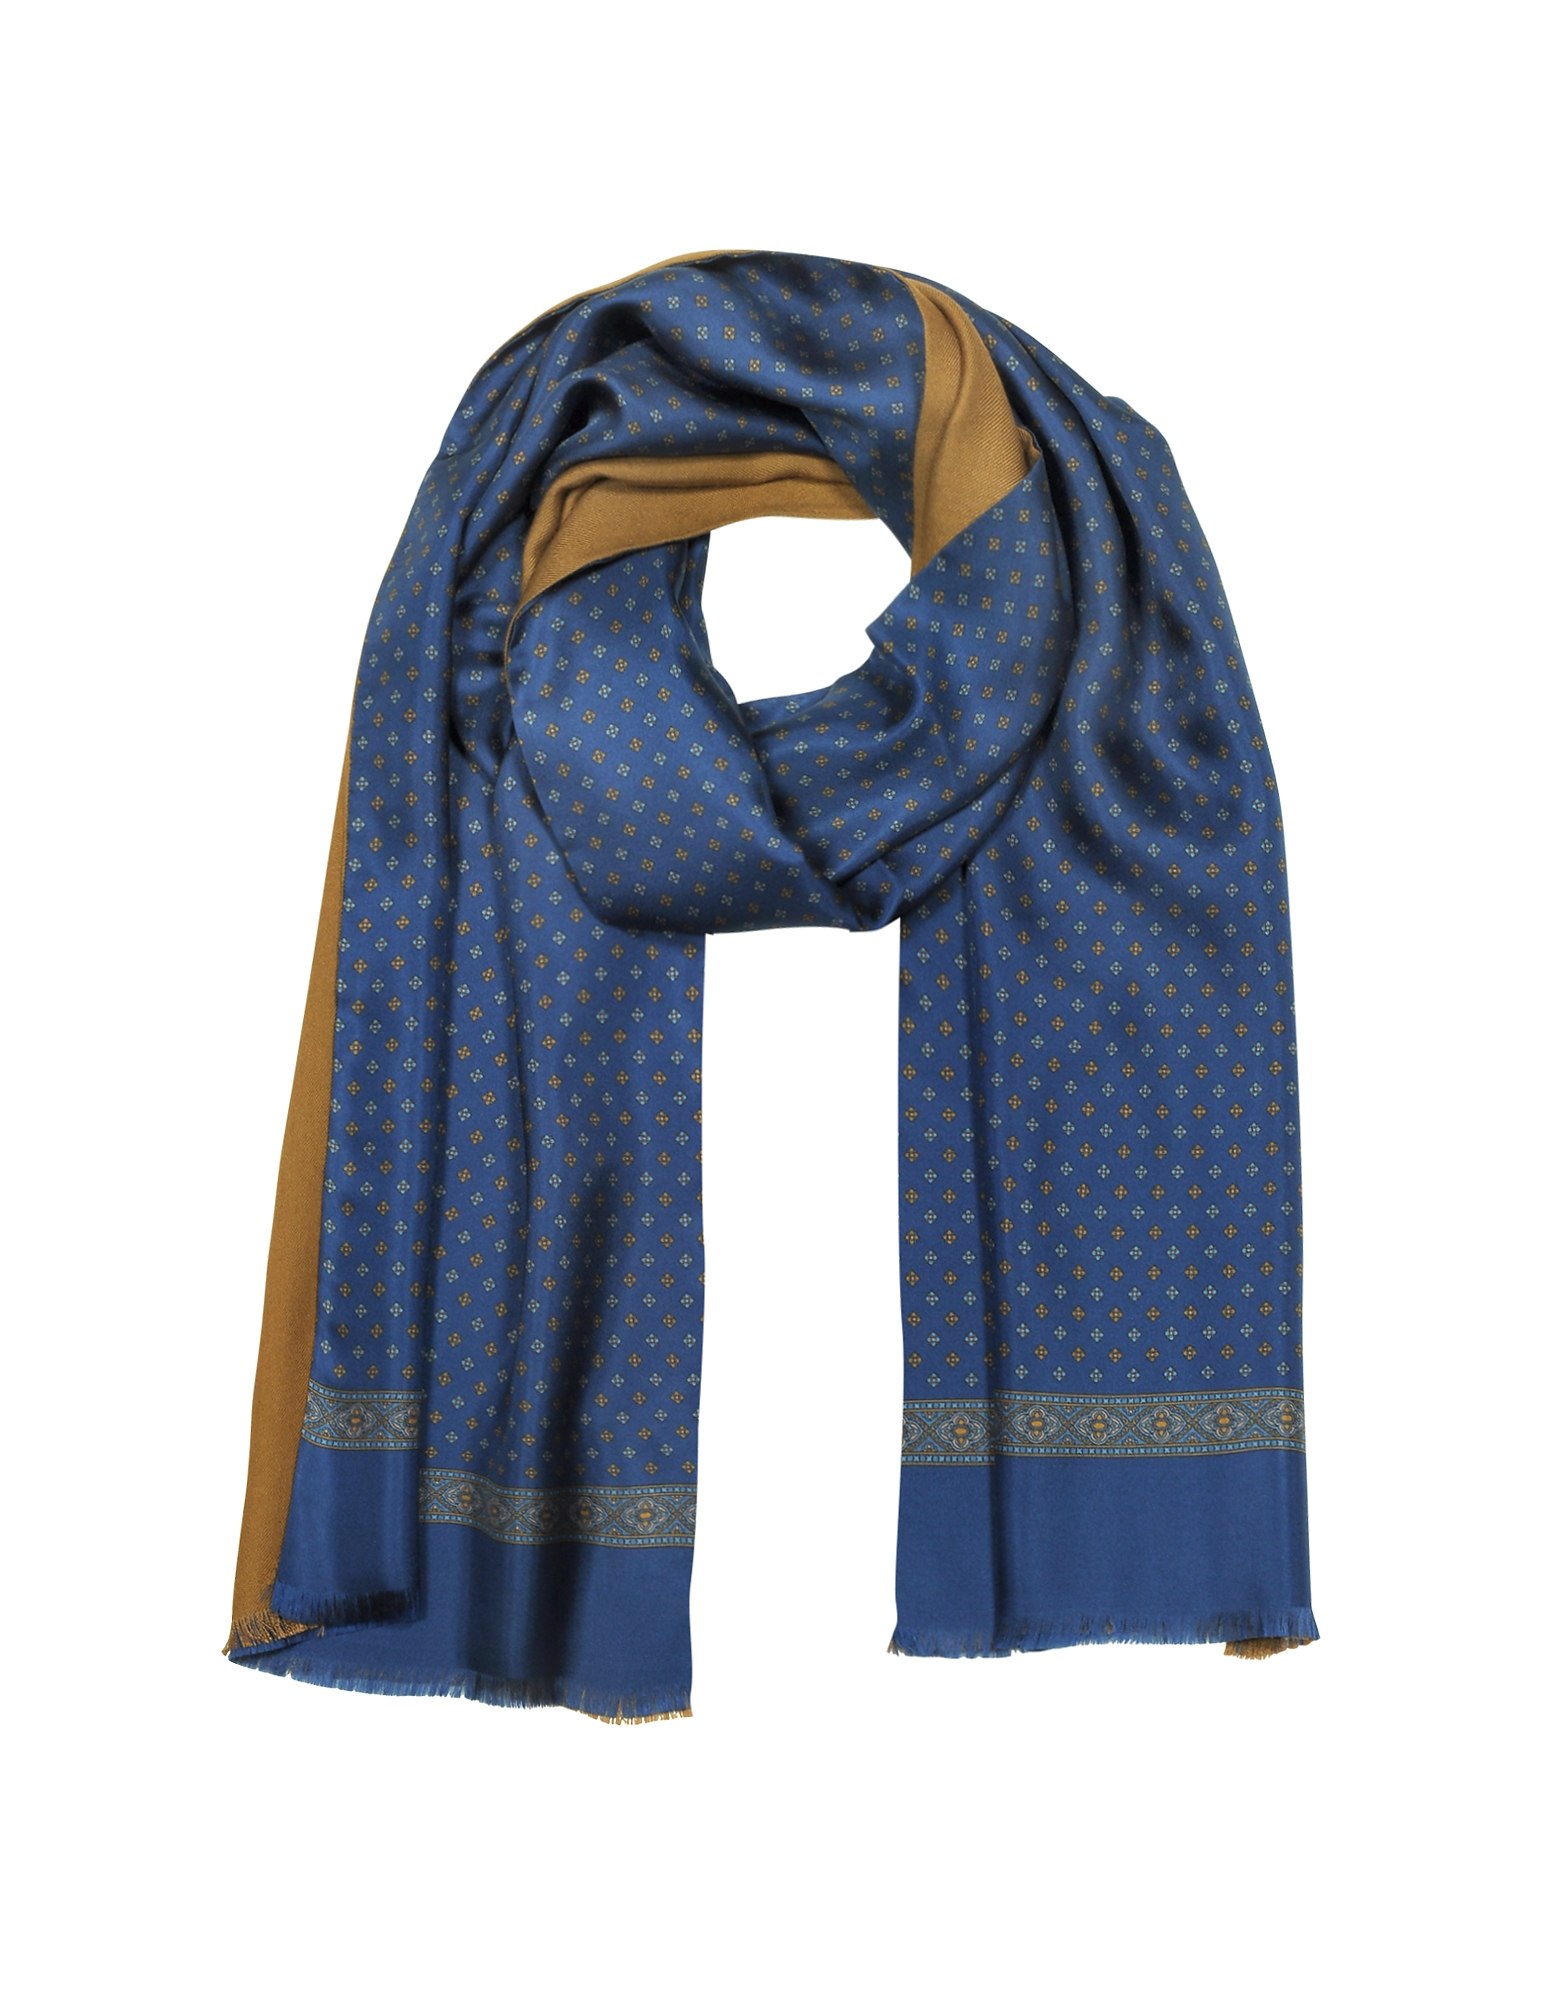 Micro Floral Print Blue Silk and Camel Modal Reversible Men's Scarf от Forzieri.com INT